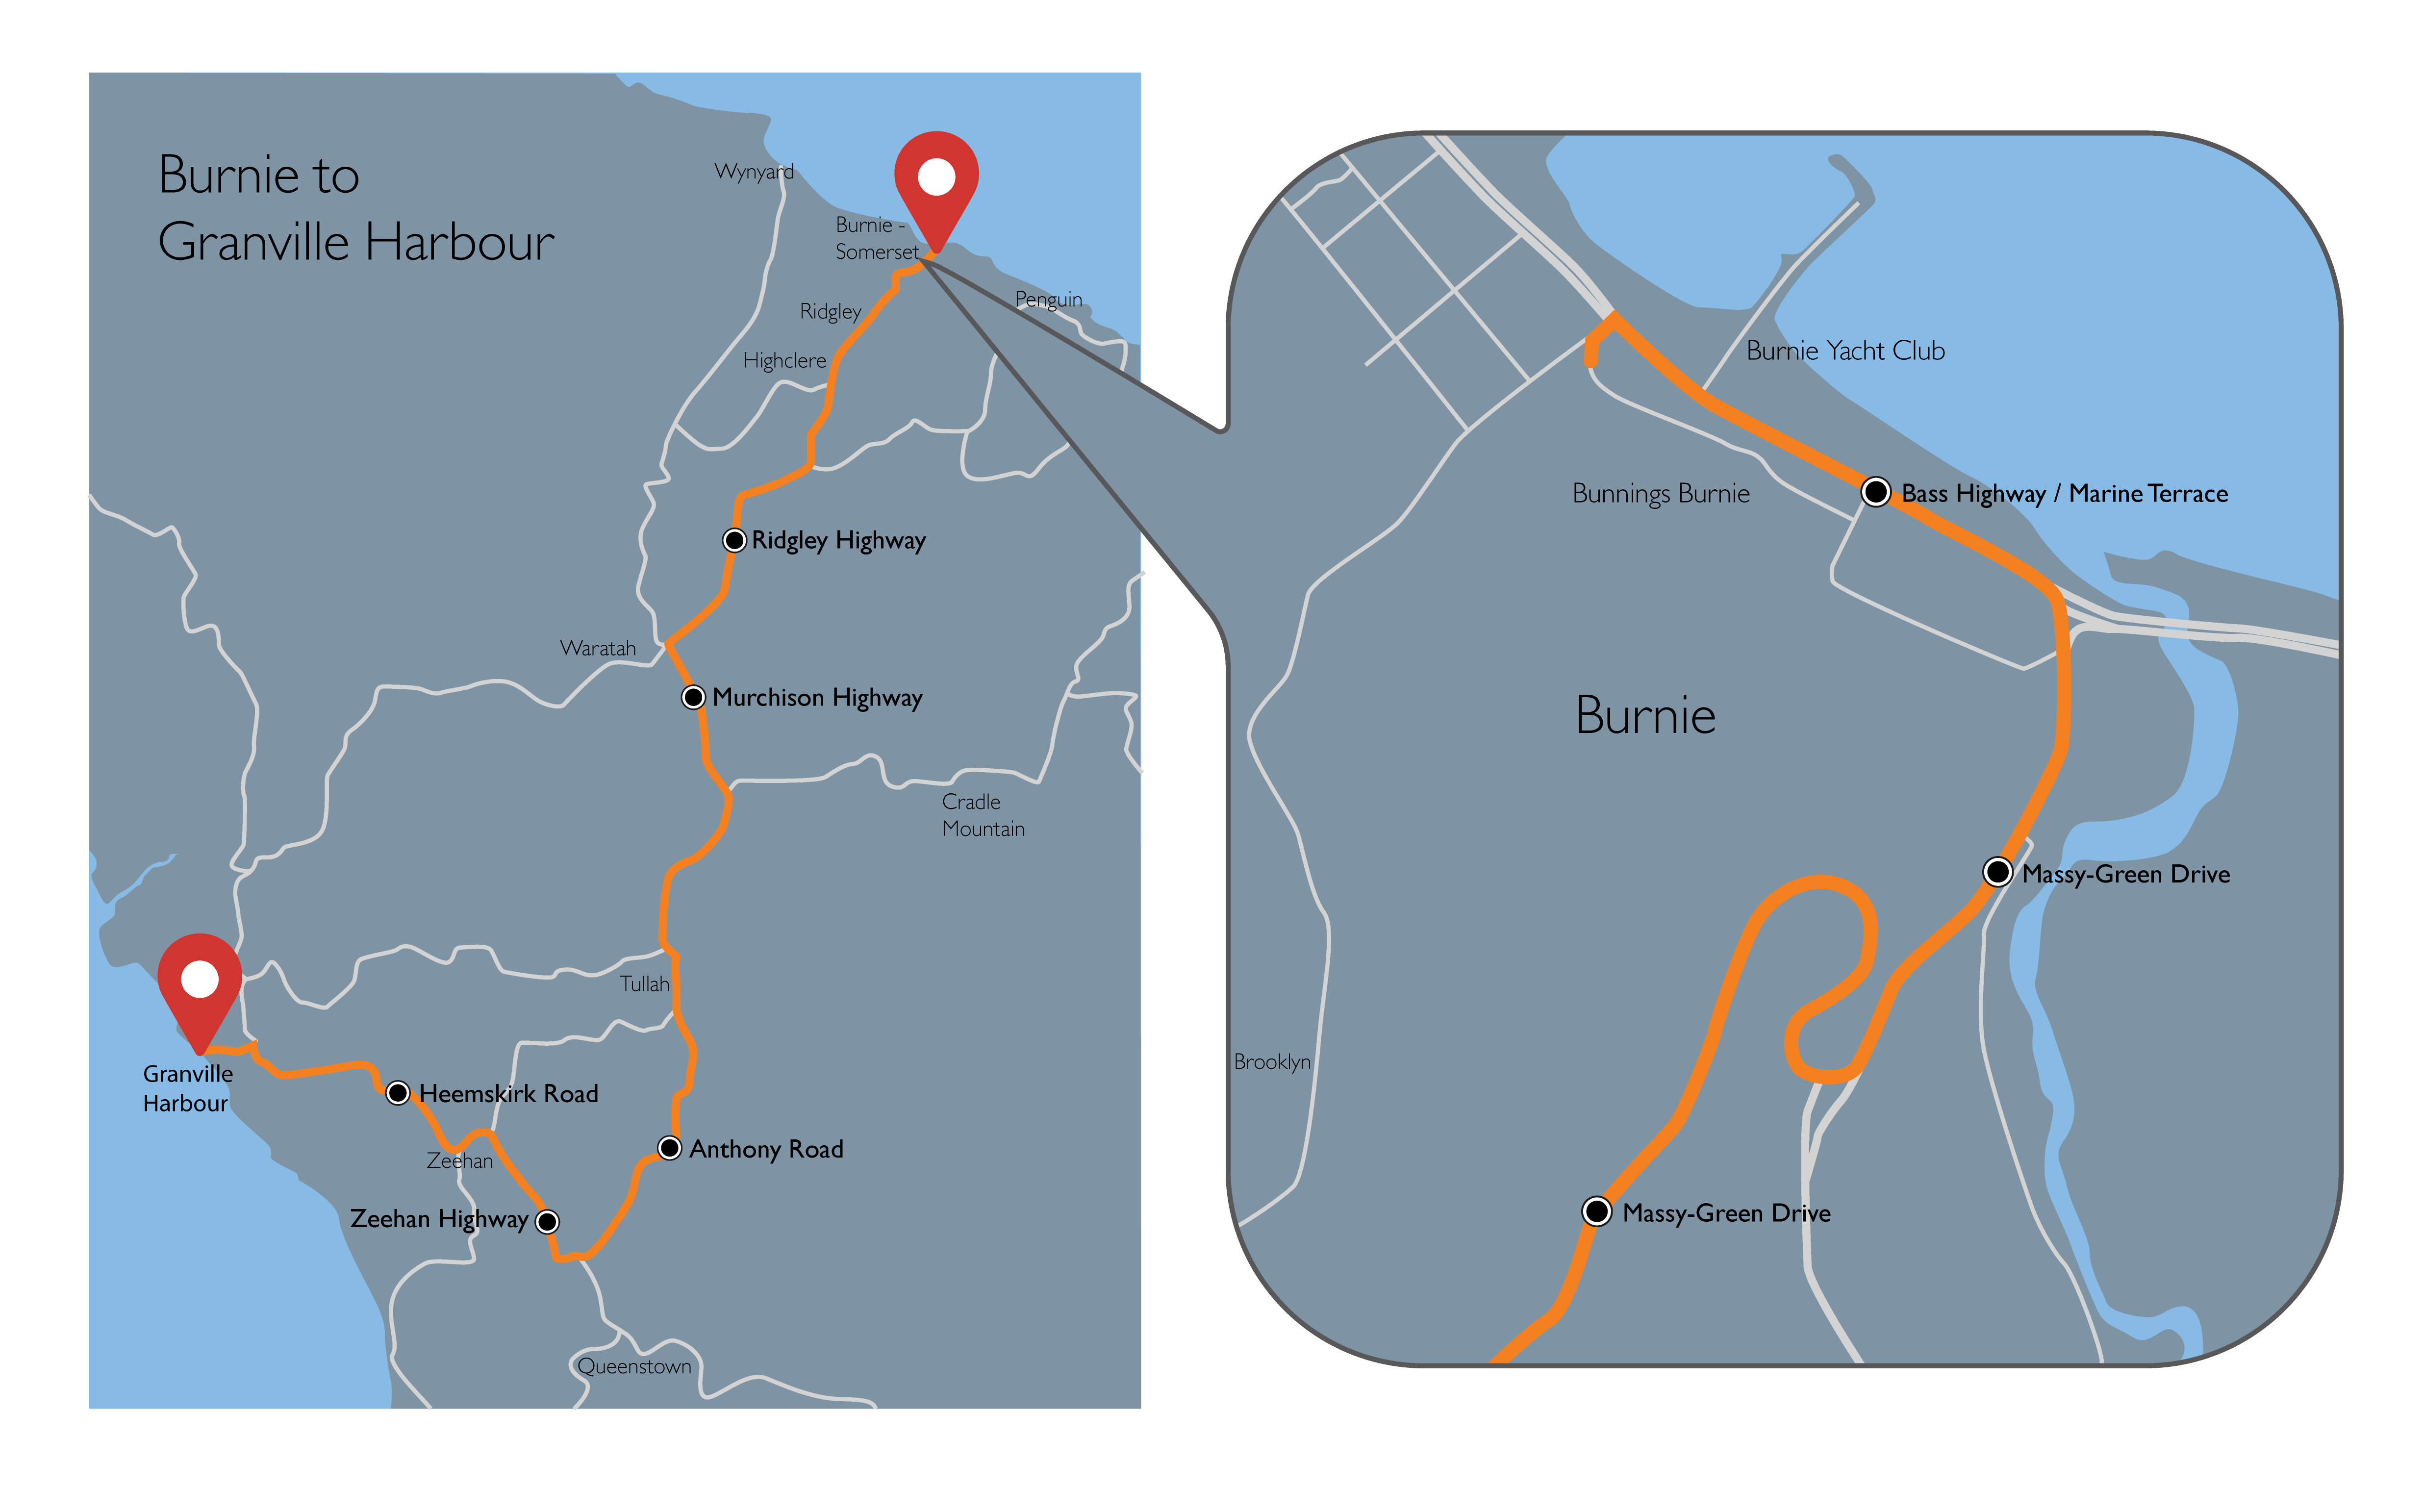 Burnie to Granville Harbour map